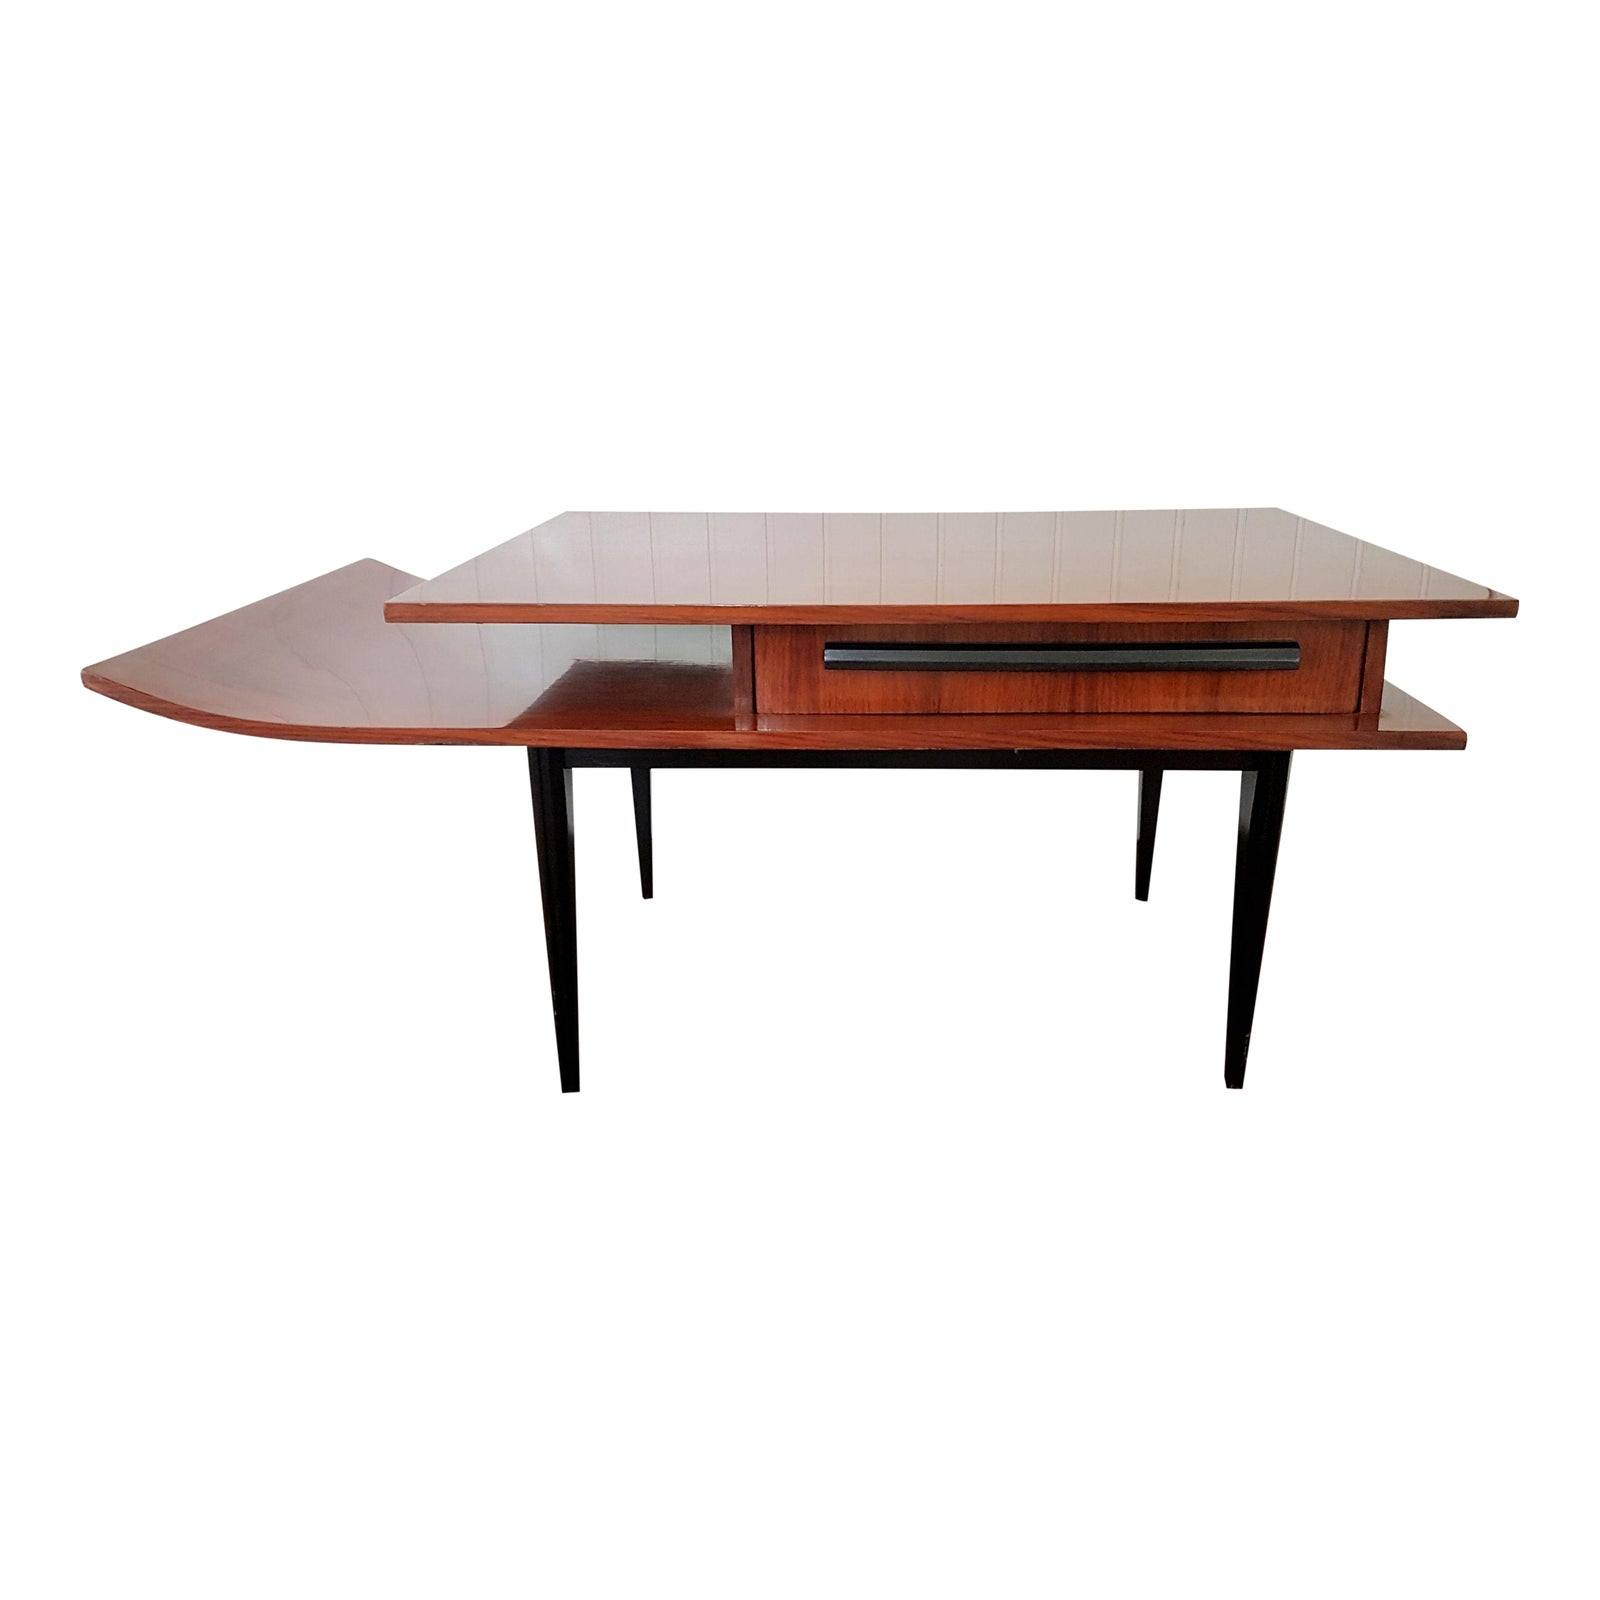 Excellent Rosewood Italian Mid Century Modern Side Table, Pagoda Shape